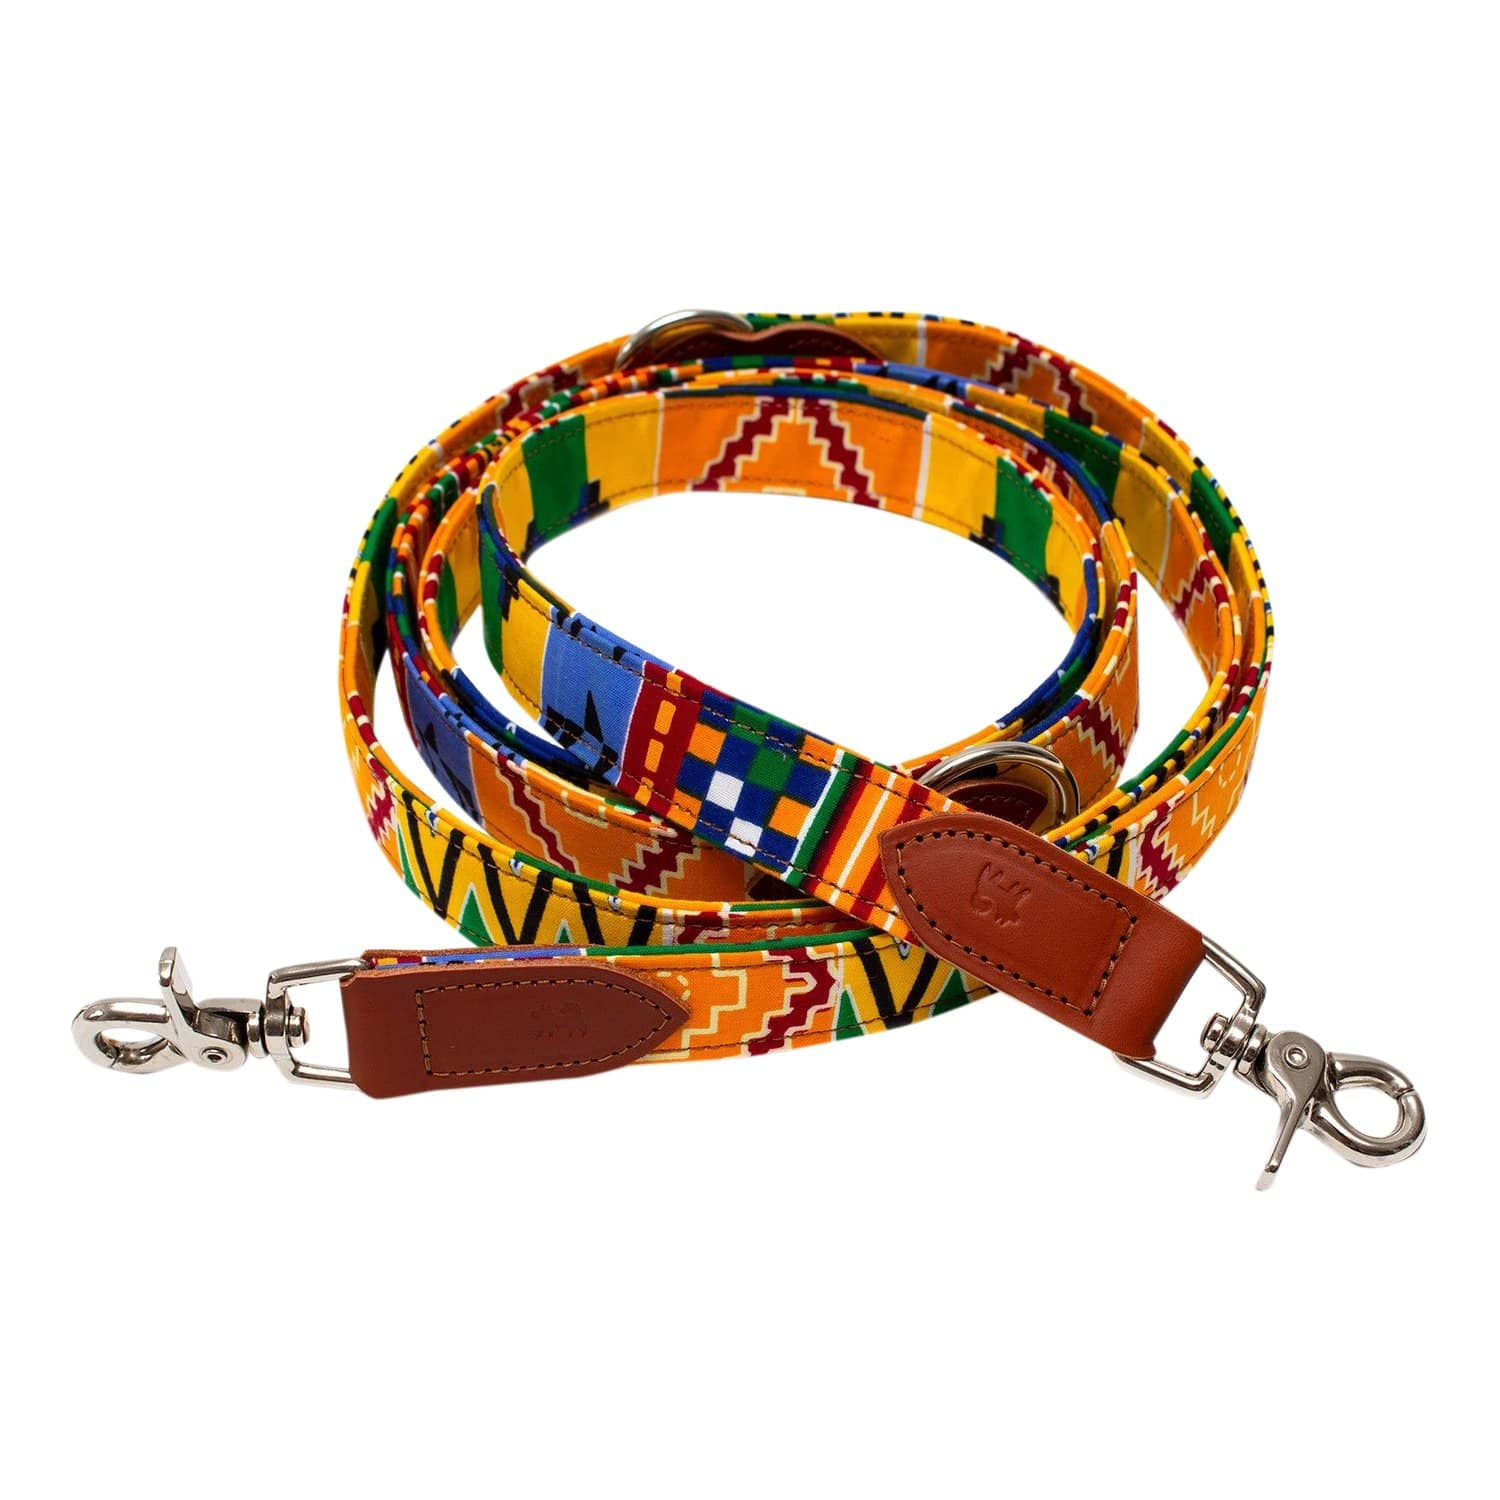 HIRO + WOLF Leashes + Leads Hands-Free Coupler Kente Dog Leash